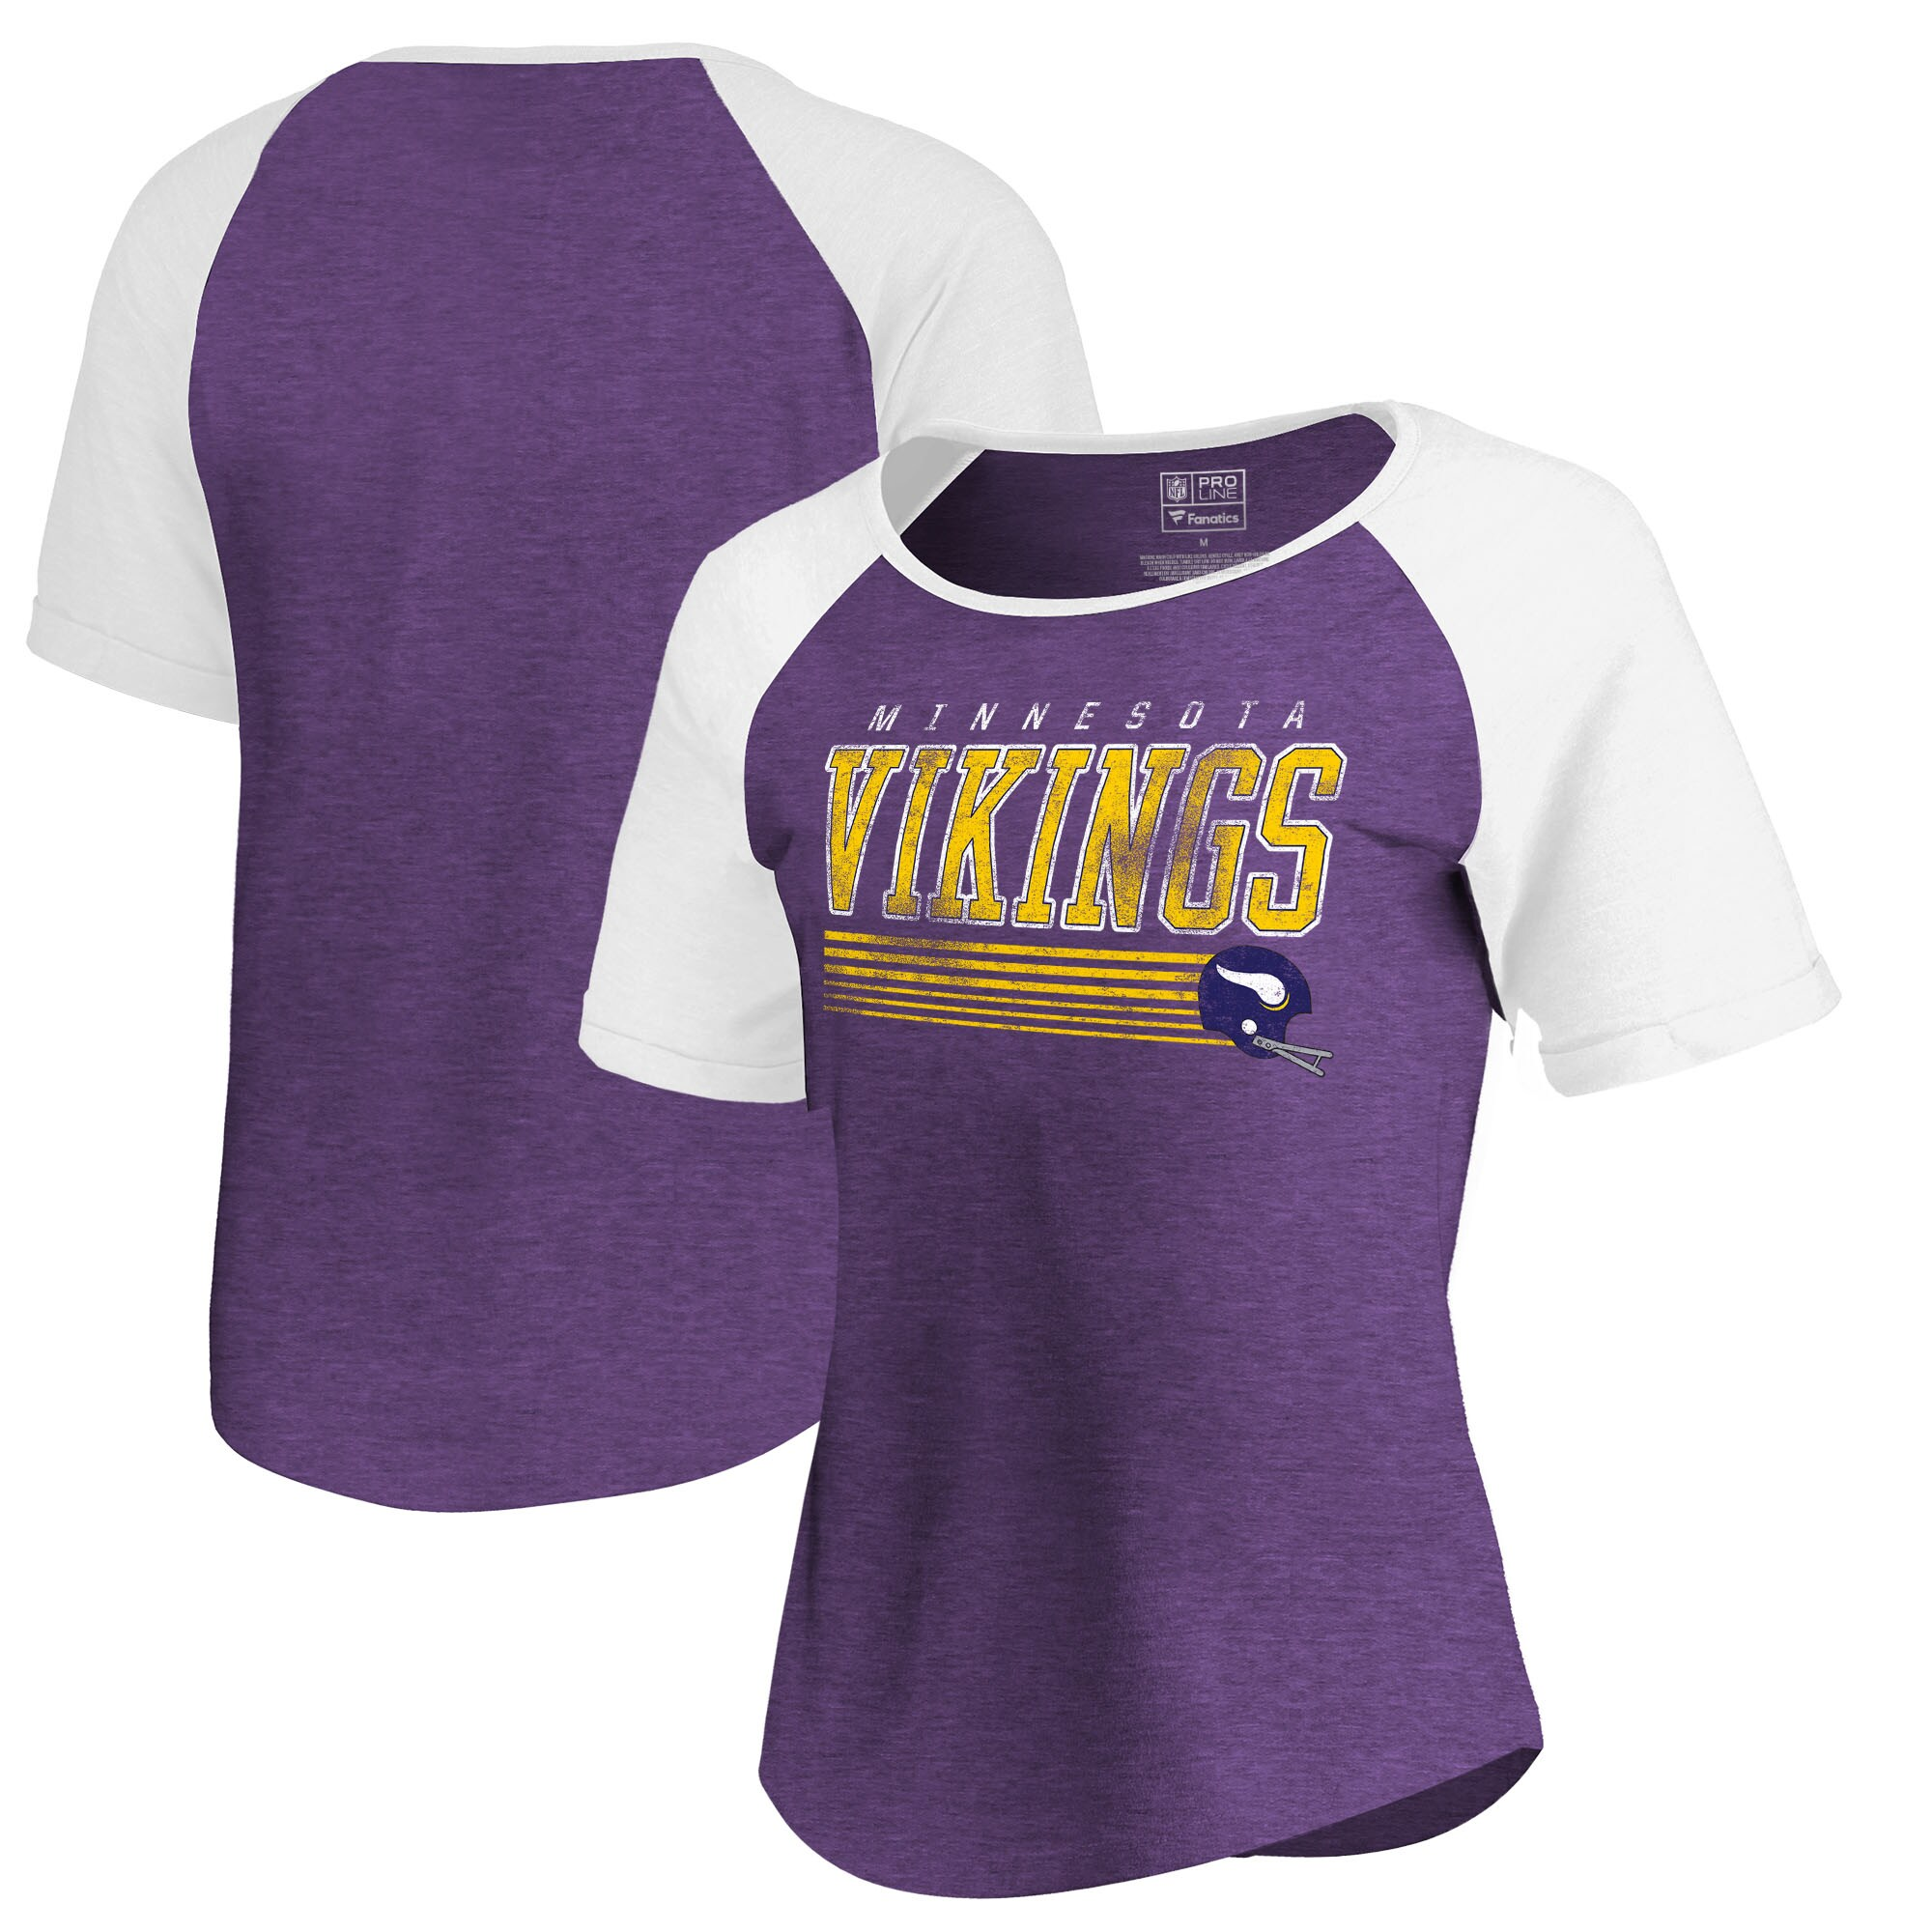 Minnesota Vikings NFL Pro Line by Fanatics Branded Women's Throwback Collection Fast Pass Tri-Blend T-Shirt - Purple